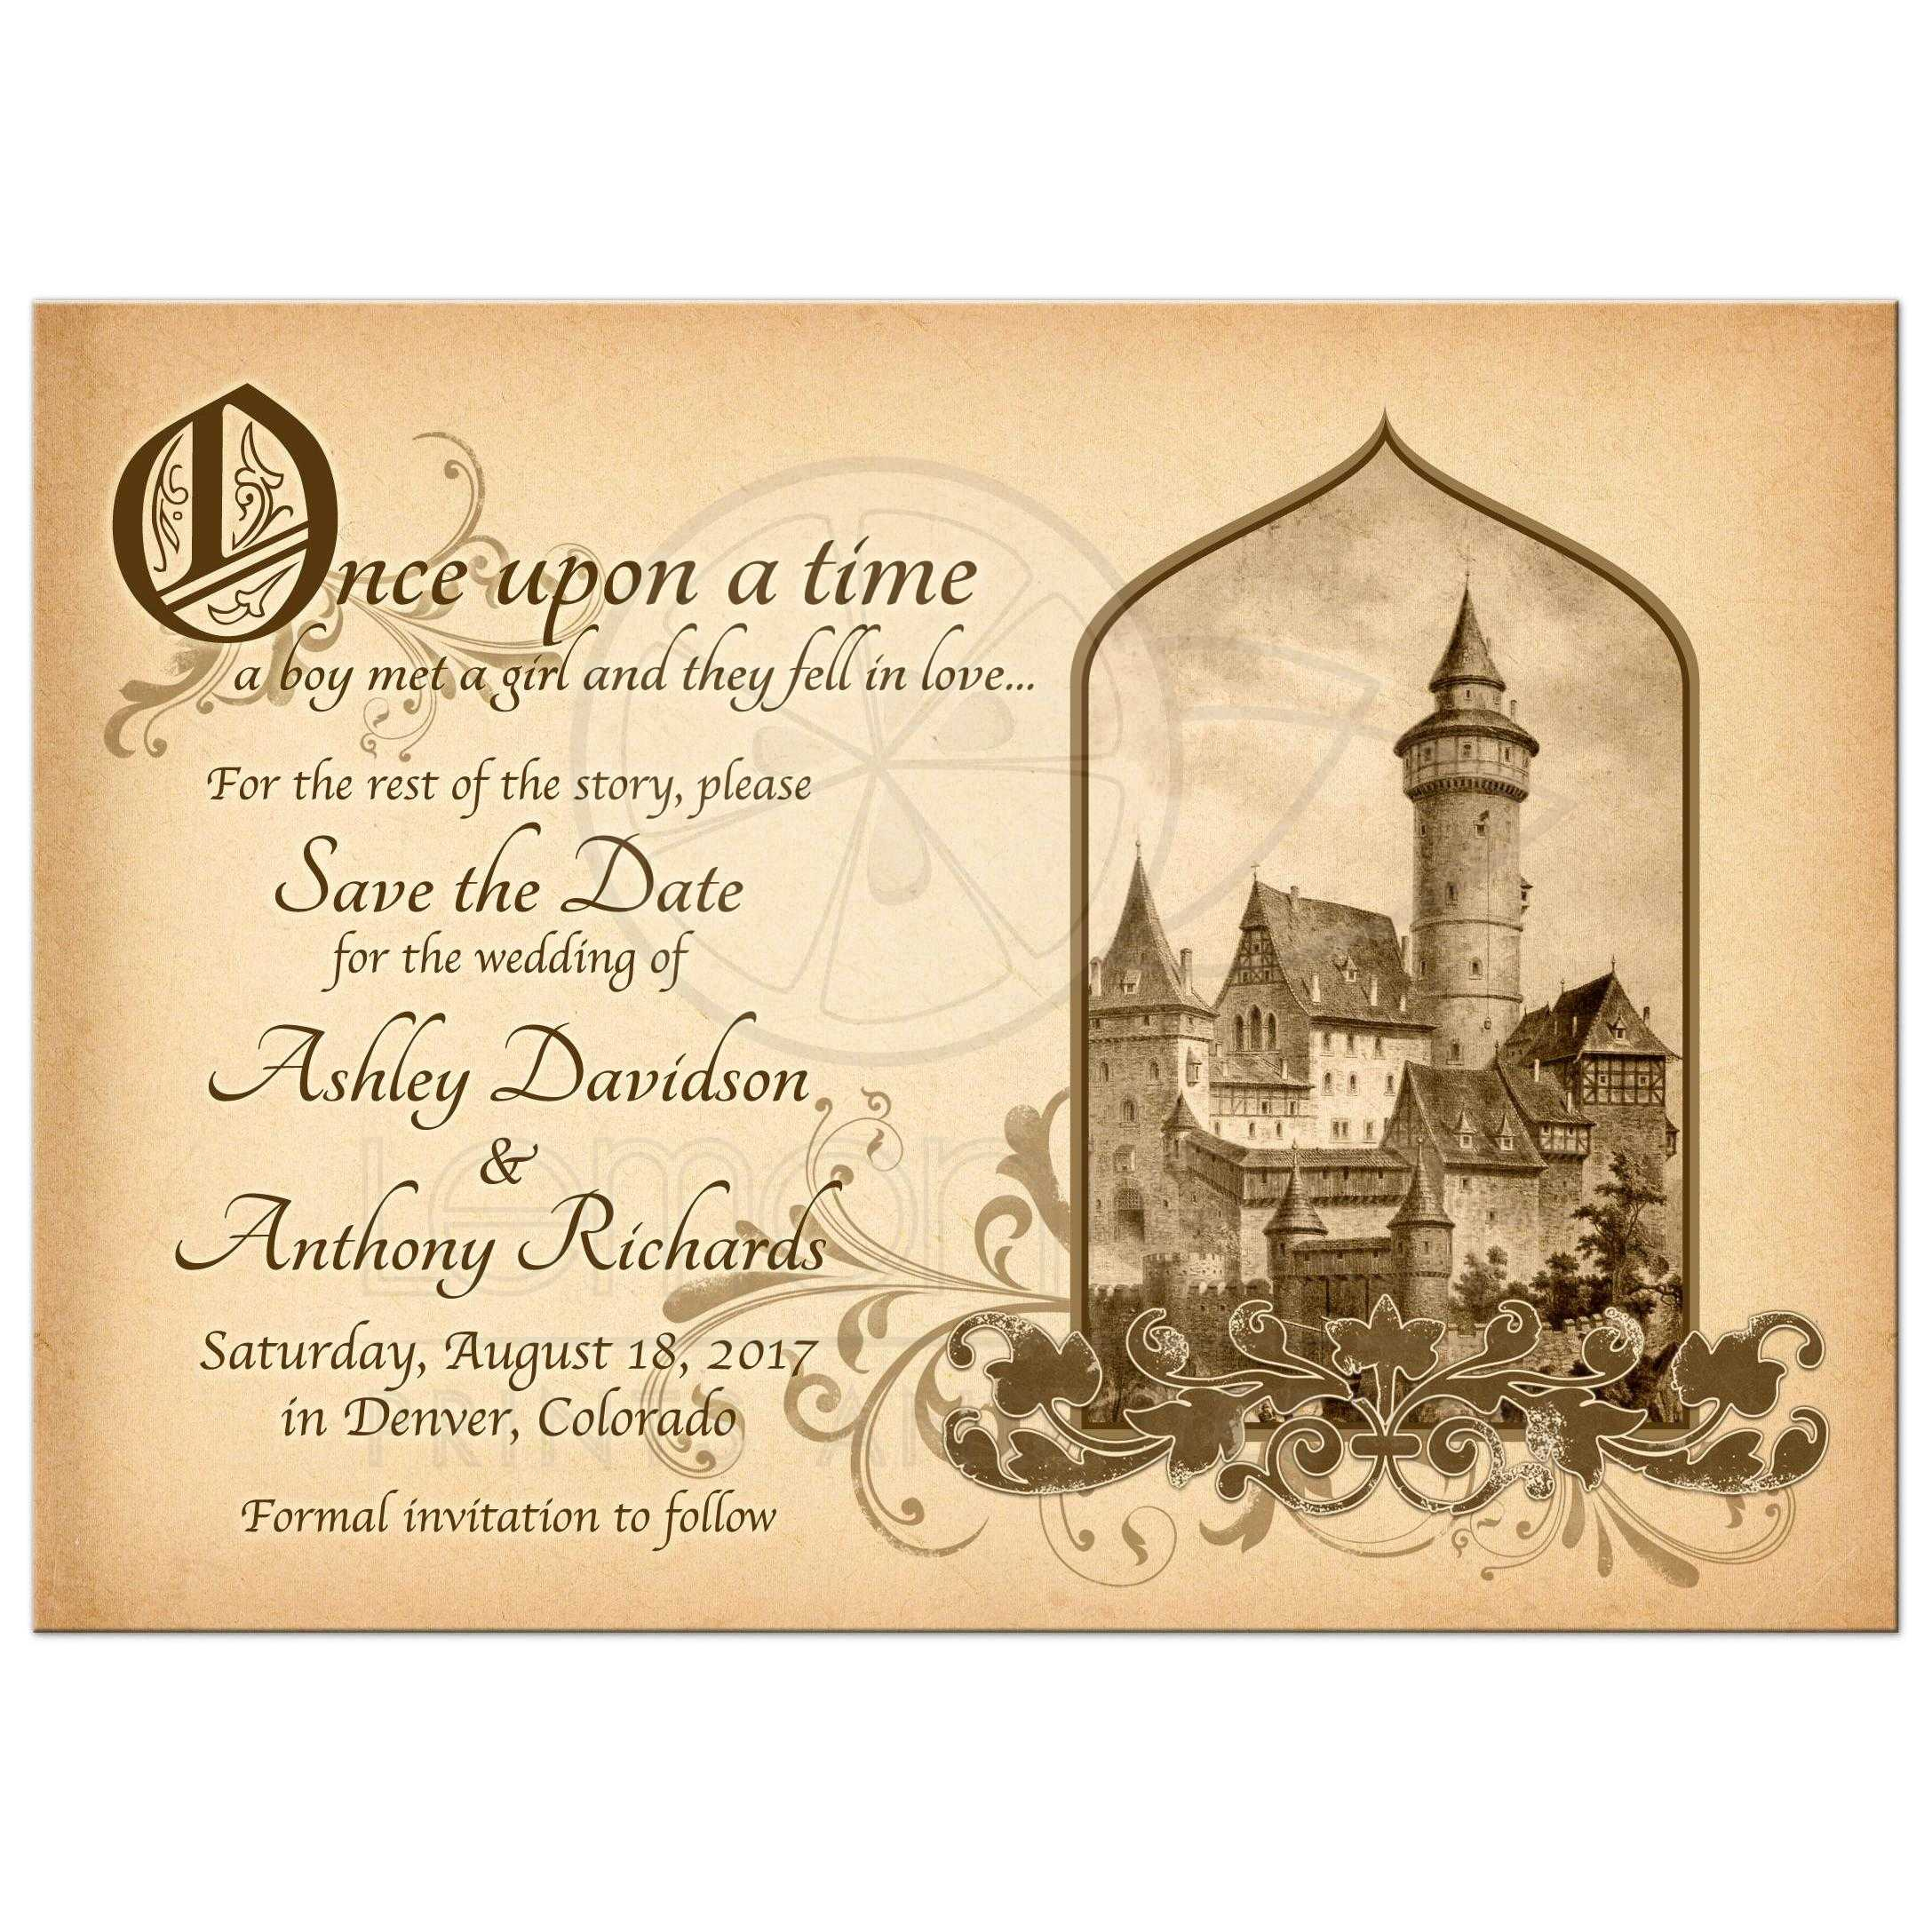 Beautiful Vintage Medieval Castle Fairy Tale Once Upon A Time Wedding Save The Date Announcement Front: Formal Meval Wedding Invitation Wording At Websimilar.org